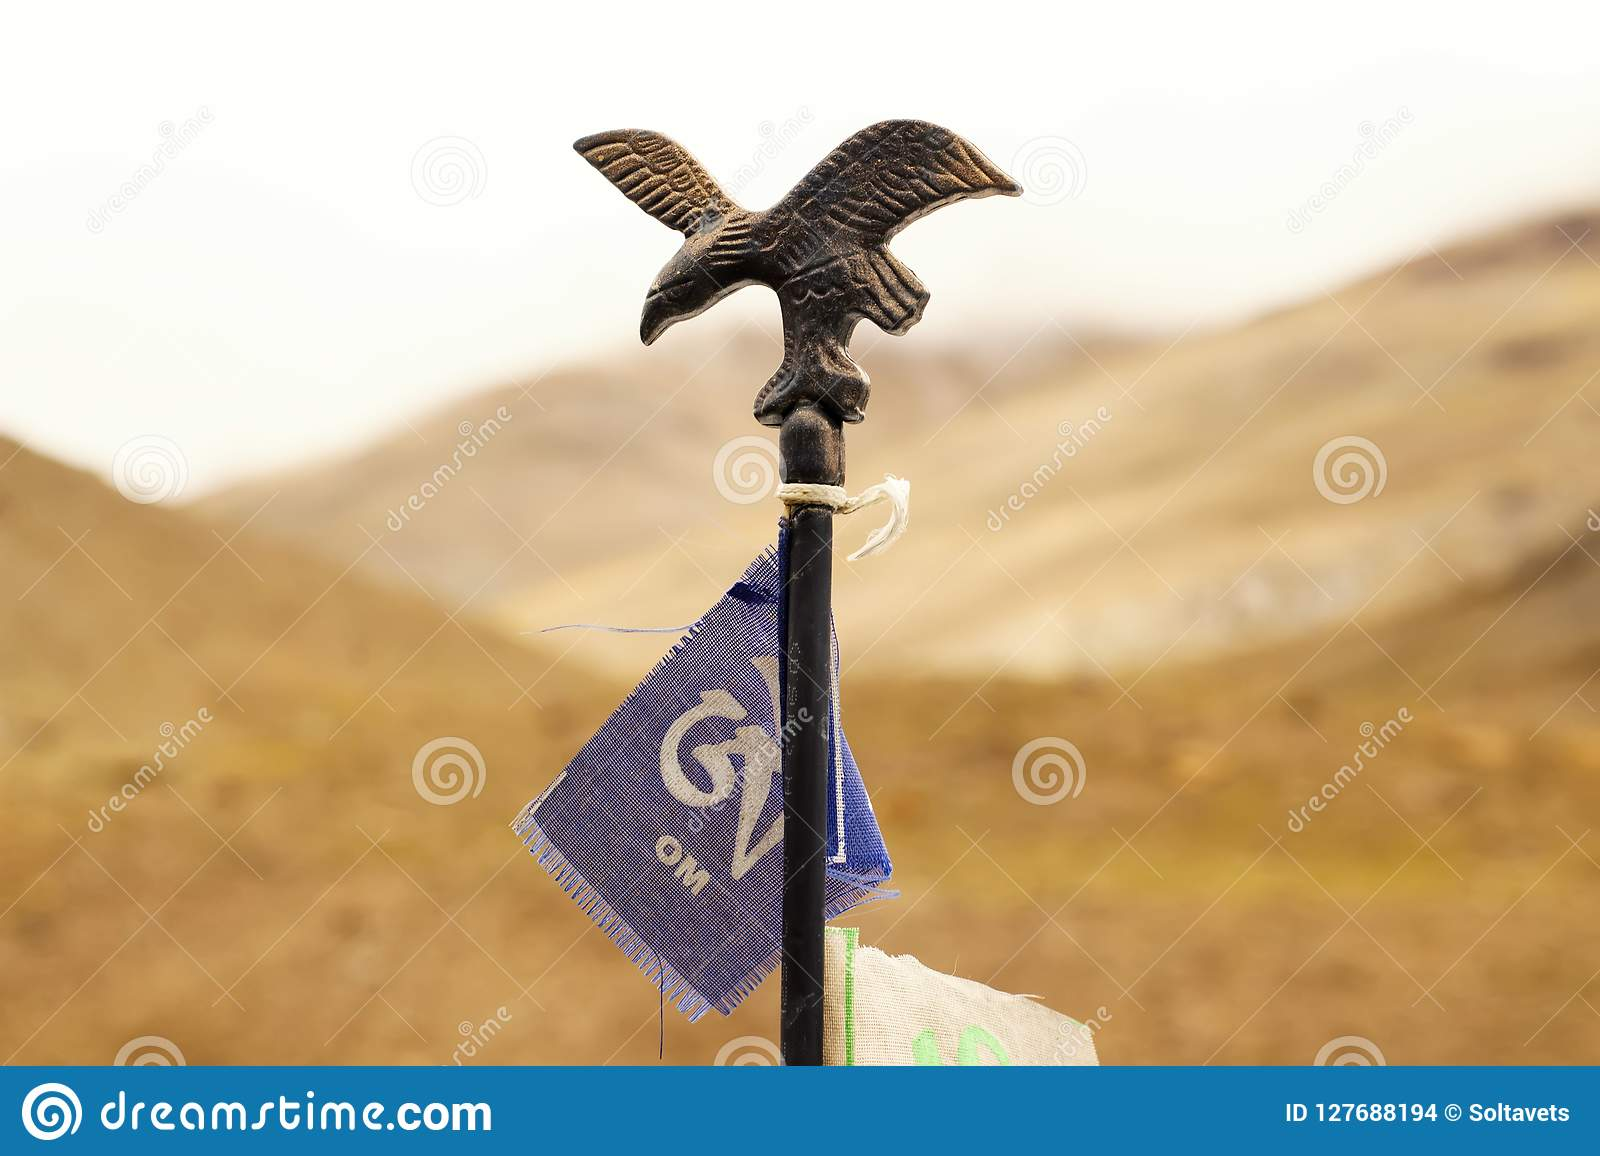 Iron figure of the eagle with the flag of Om